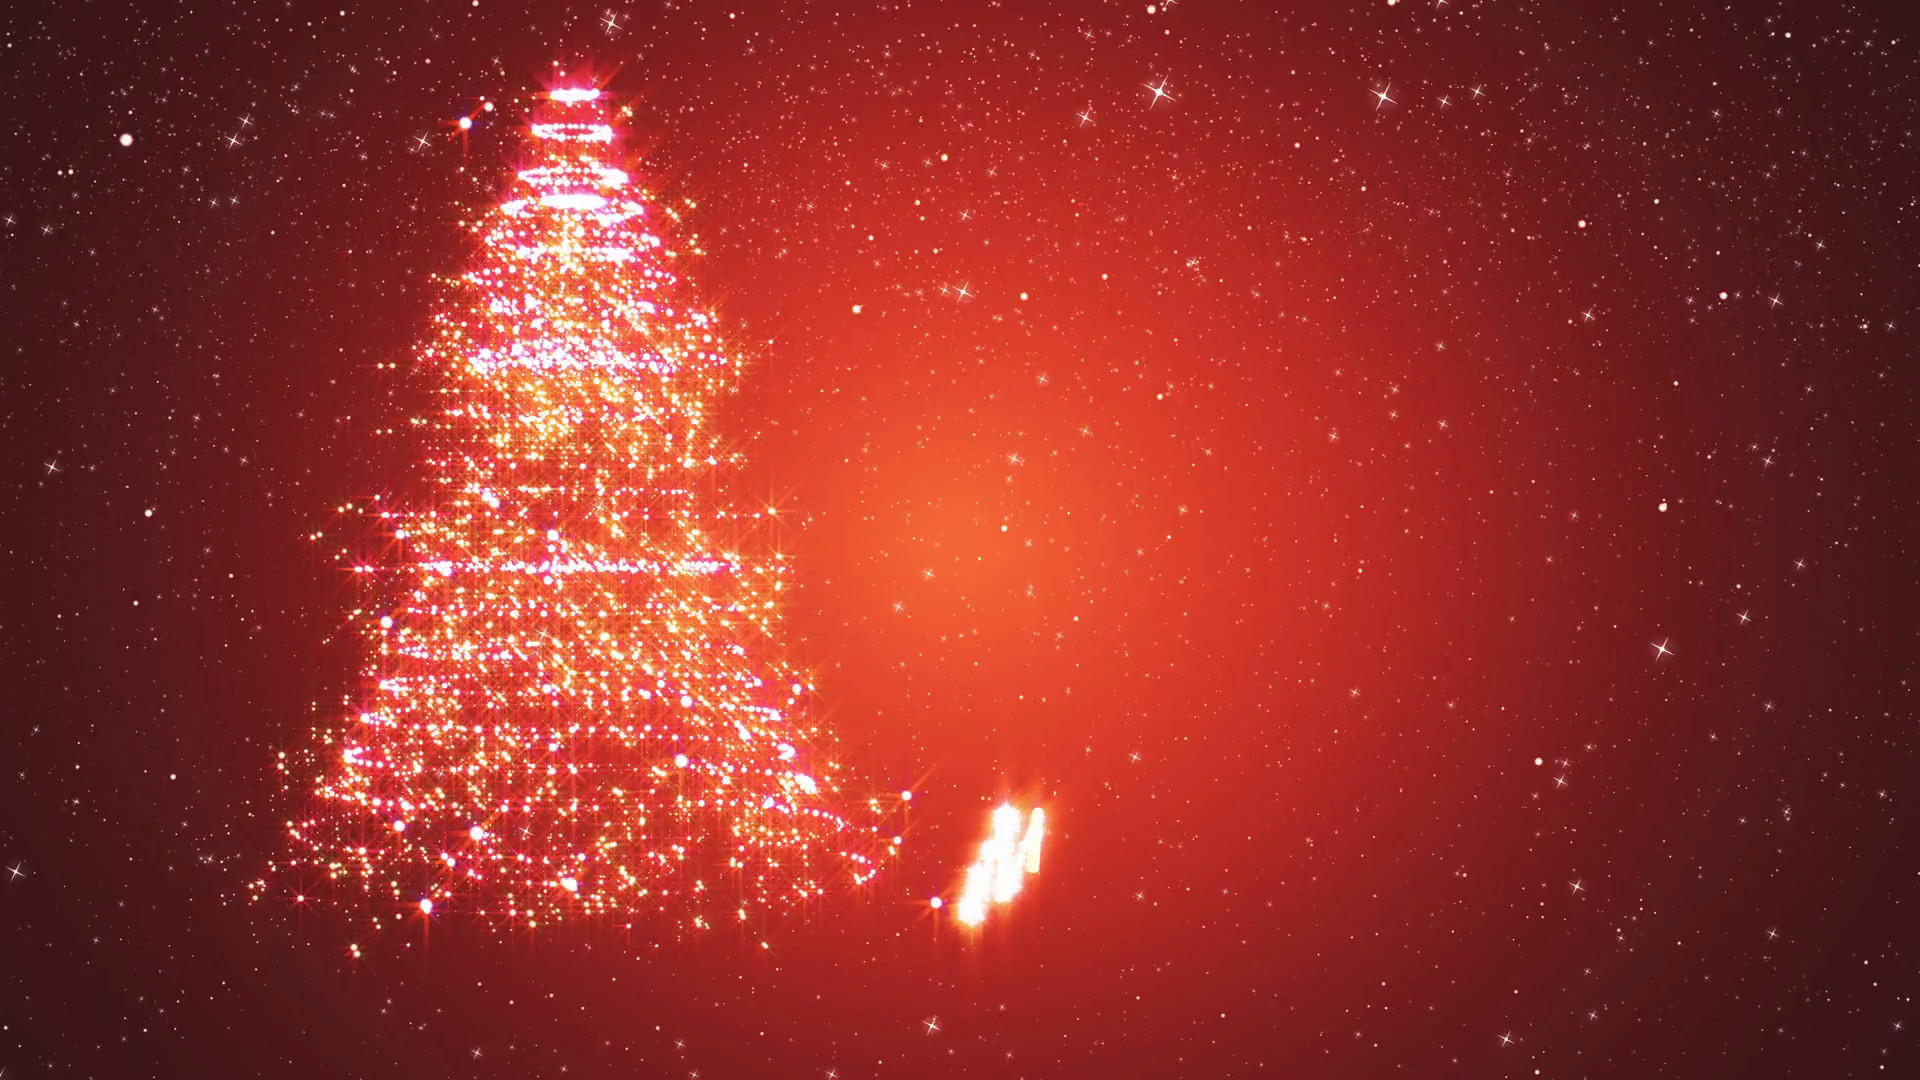 festive background images 183�� wallpapertag